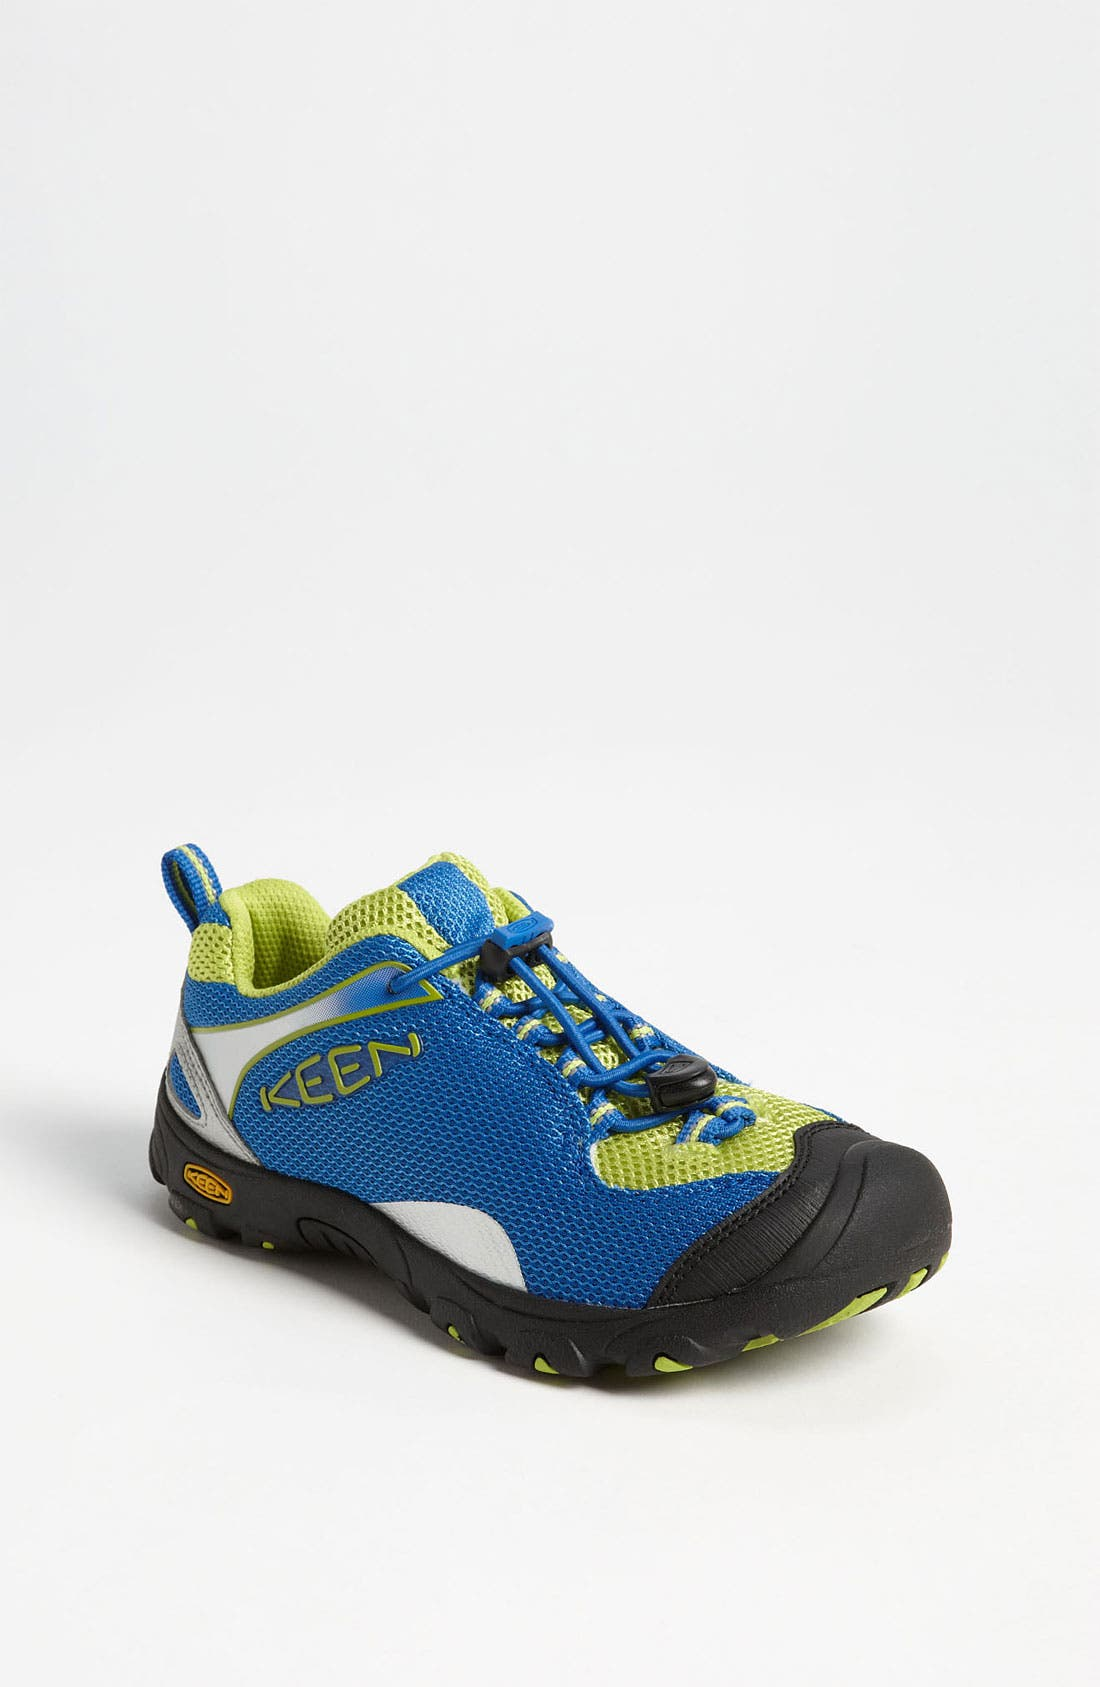 Main Image - Keen 'Jamison' Sneaker (Toddler, Little Kid & Big Kid)